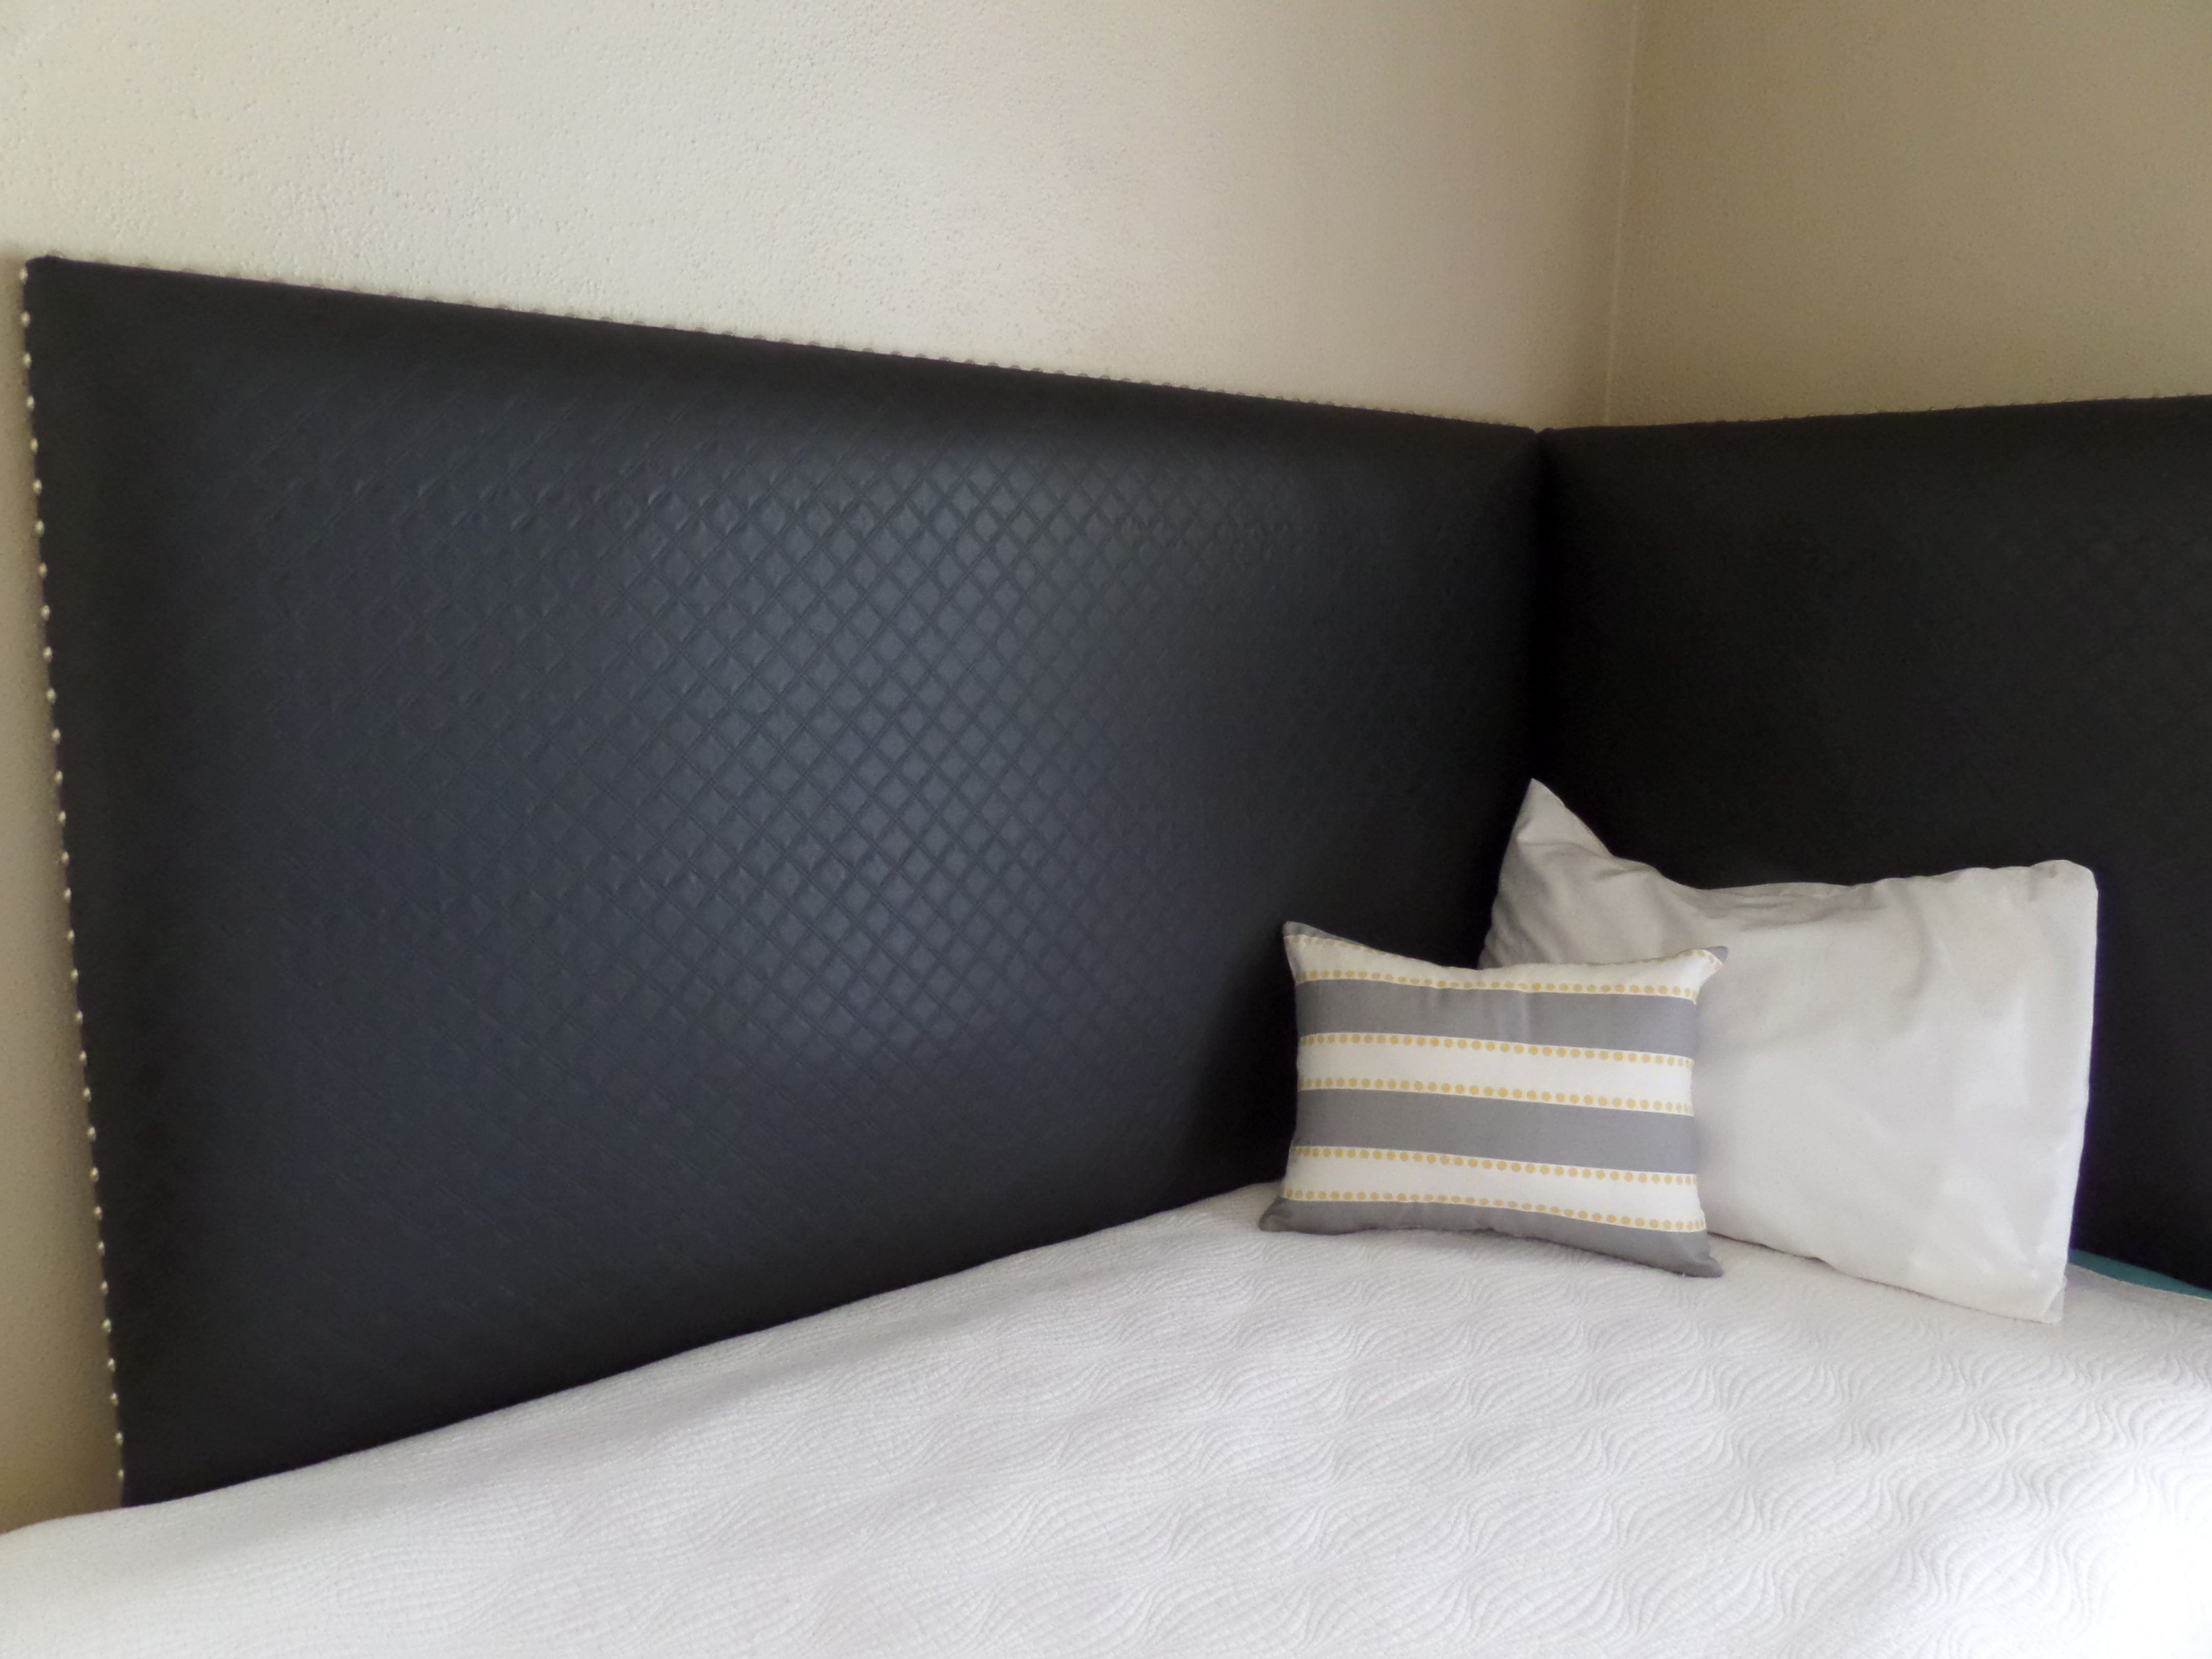 Corner Headboard Daybed Black Faux Leather Silver Nail Heads Custom  Upholstered Wall Mounted Great Ideas